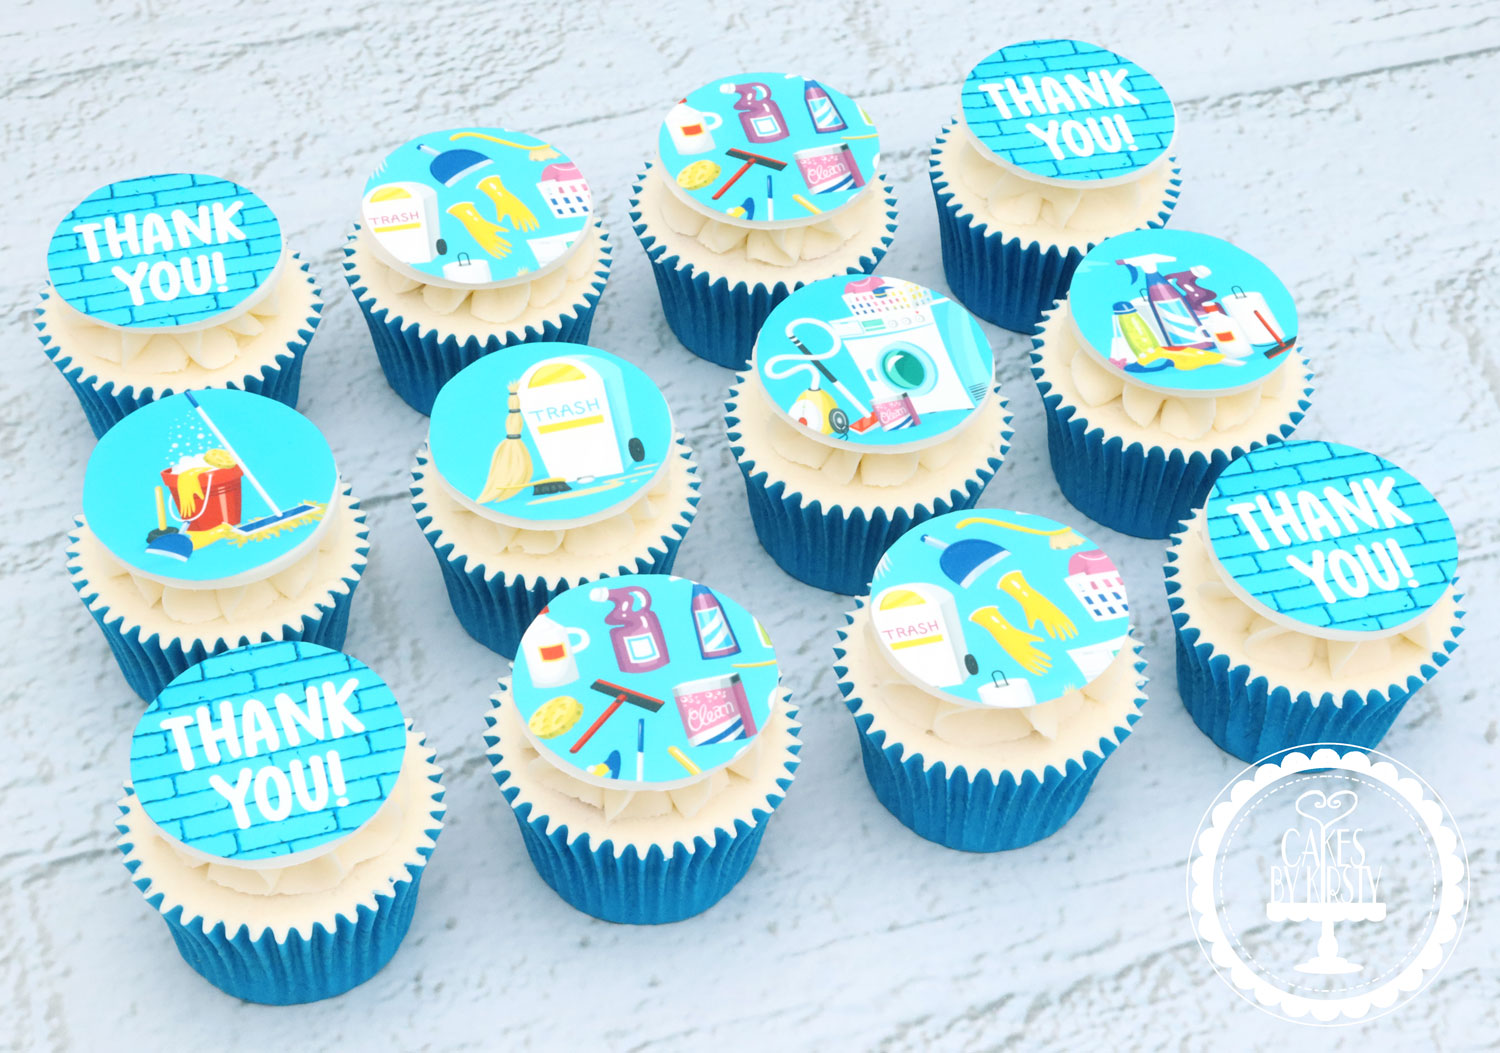 20200913 - House Move Thank You Cupcakes